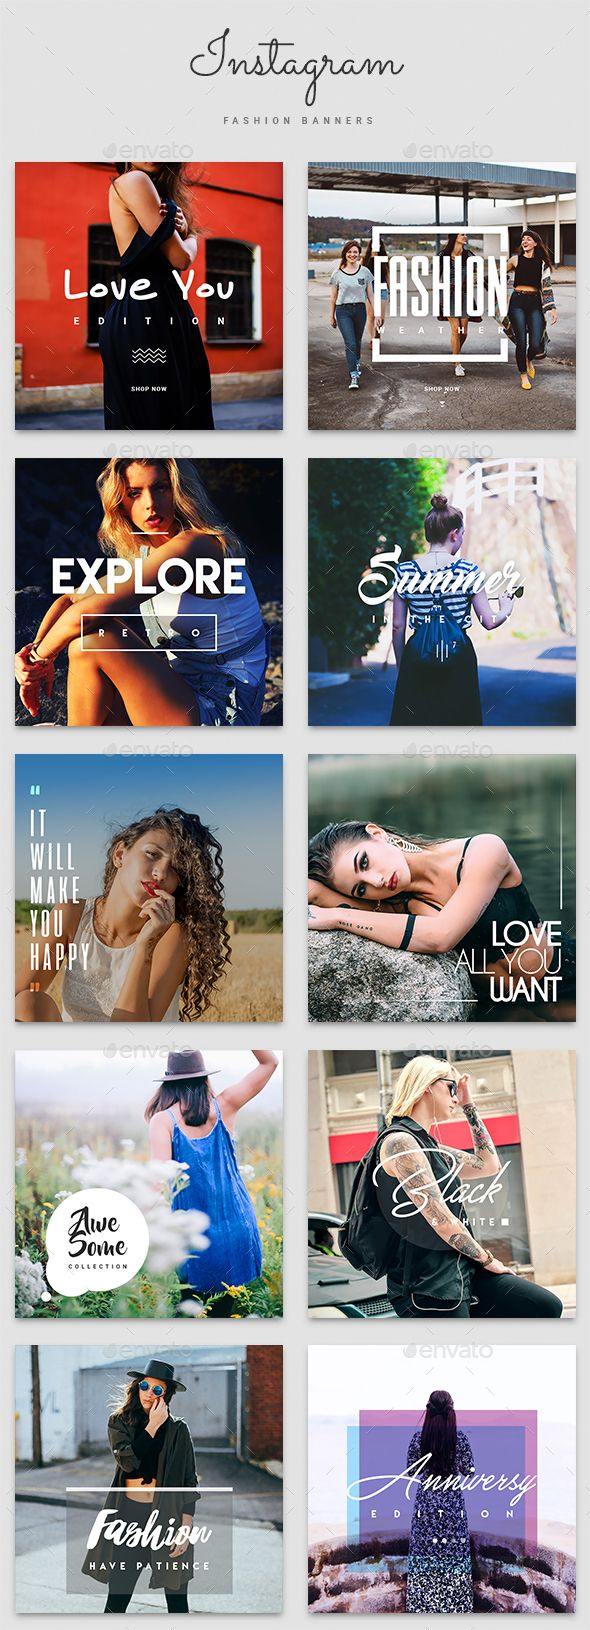 Instagram Fashion Banner Templates  — PSD Template #sale #web boxes • Download ➝…